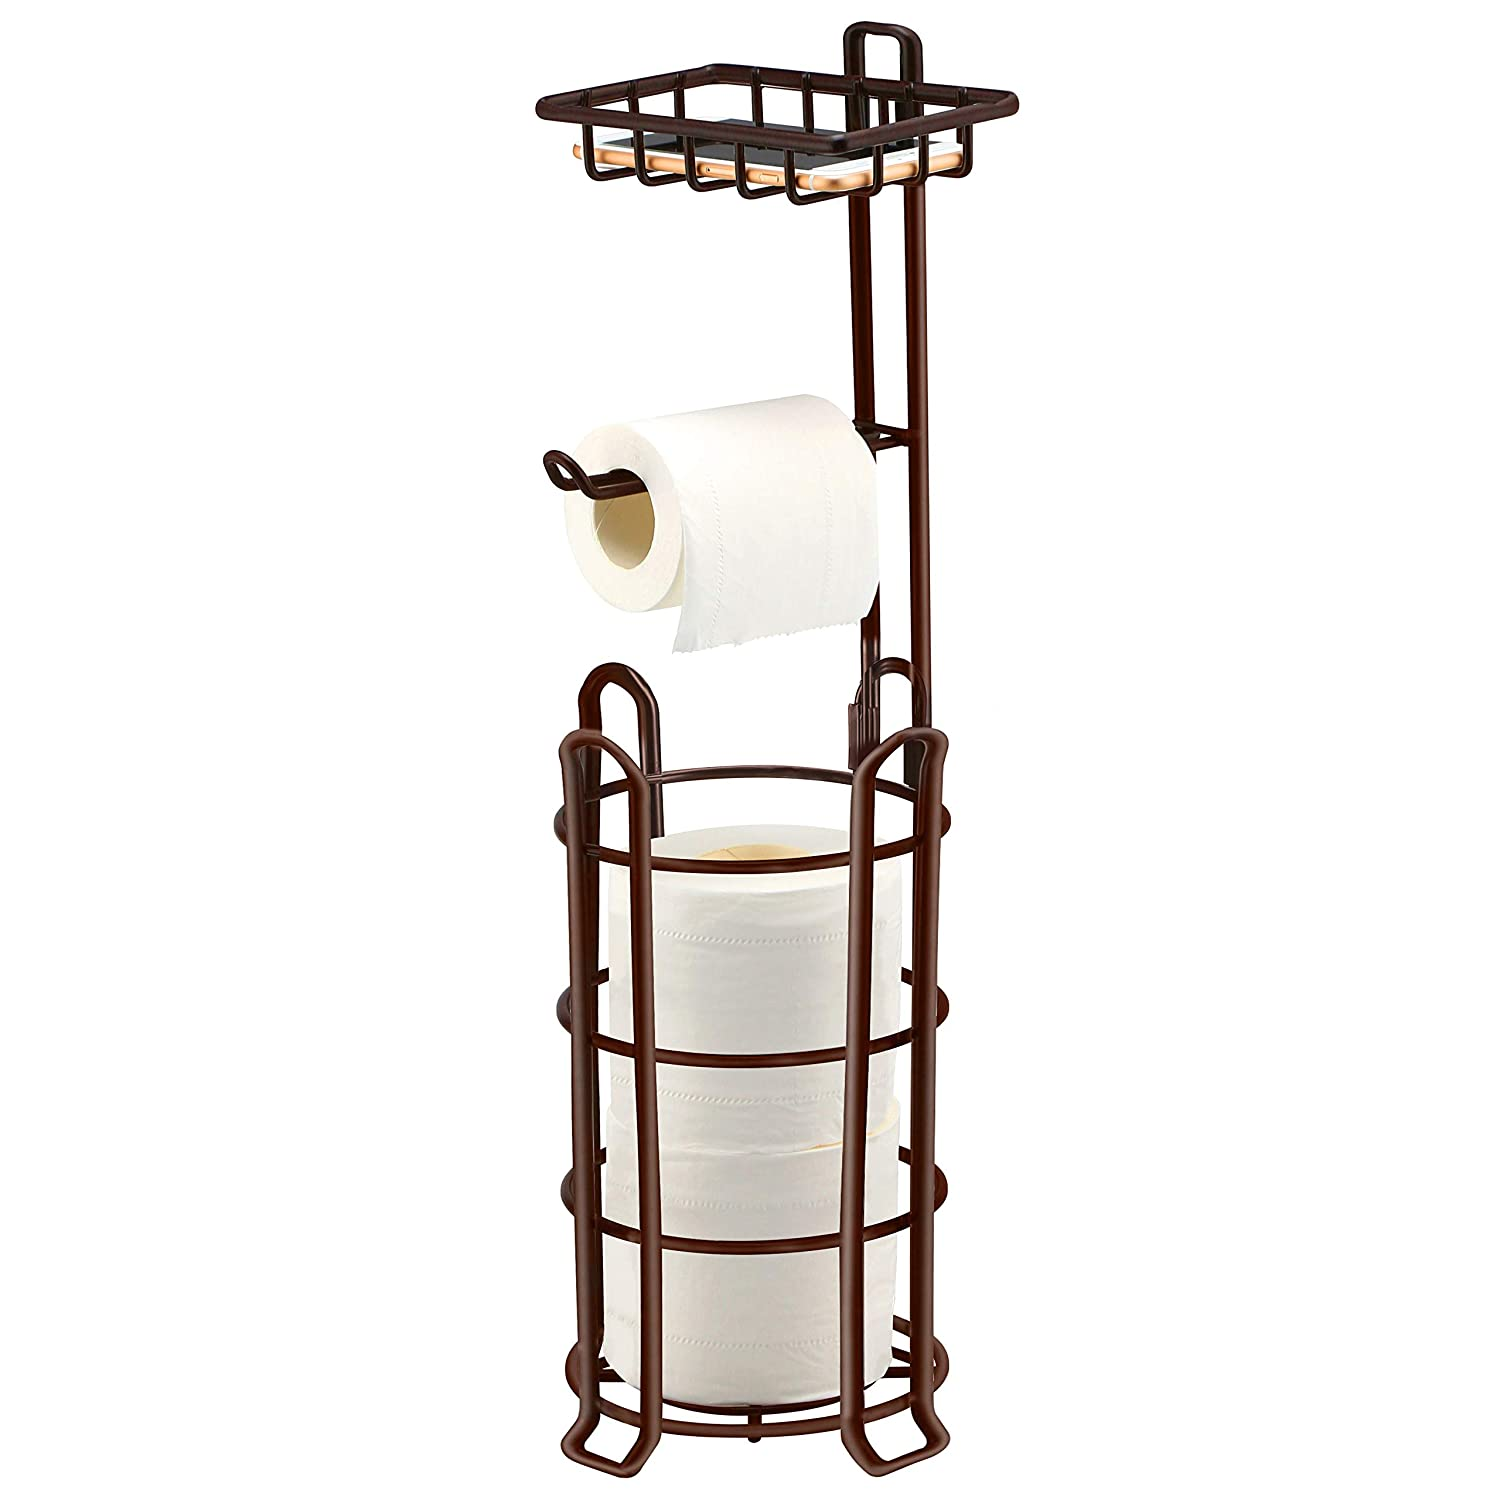 27e833f8b277f6 TomCare Toilet Paper Holder Toilet Paper Stand 4 Raised Feet Bathroom  Accessories Portable Tissue Paper Dispenser Reserve Free Standing Toilet  Paper Roll ...